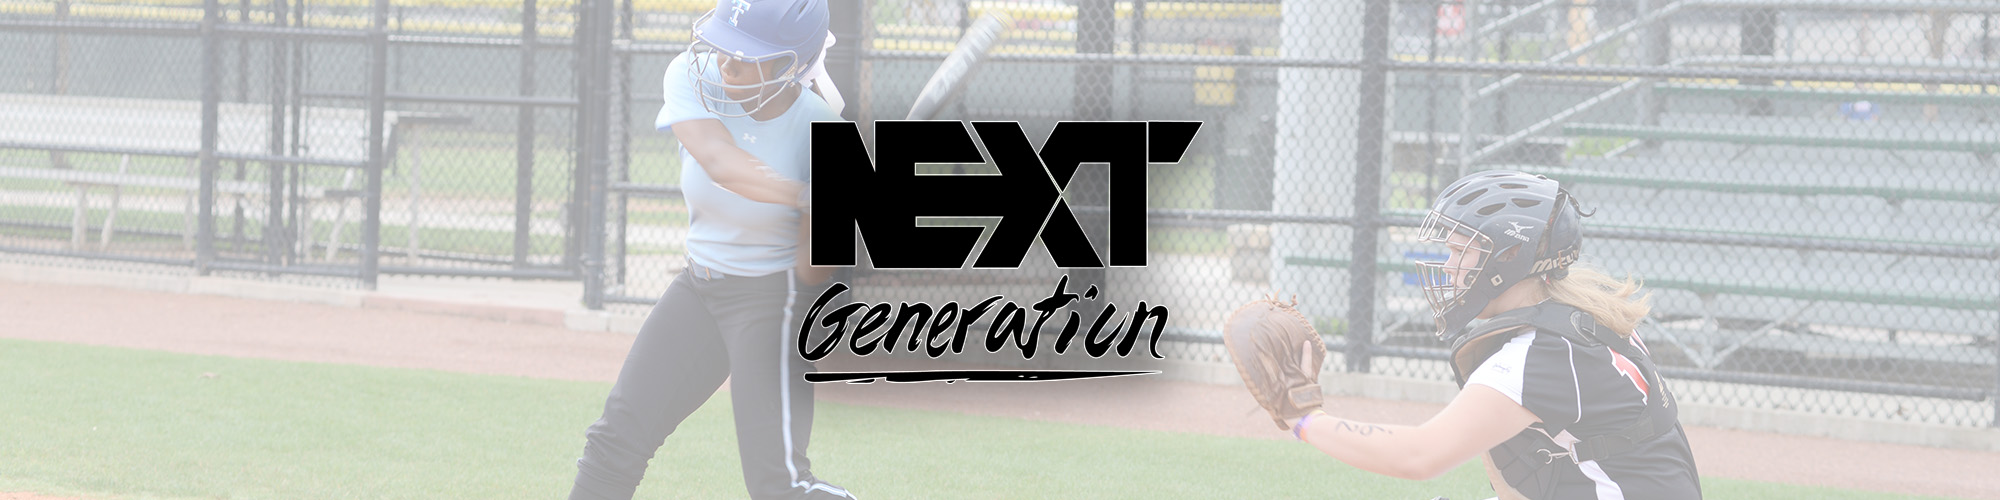 Next Generation | Home of the Southern World Series | Tennessee